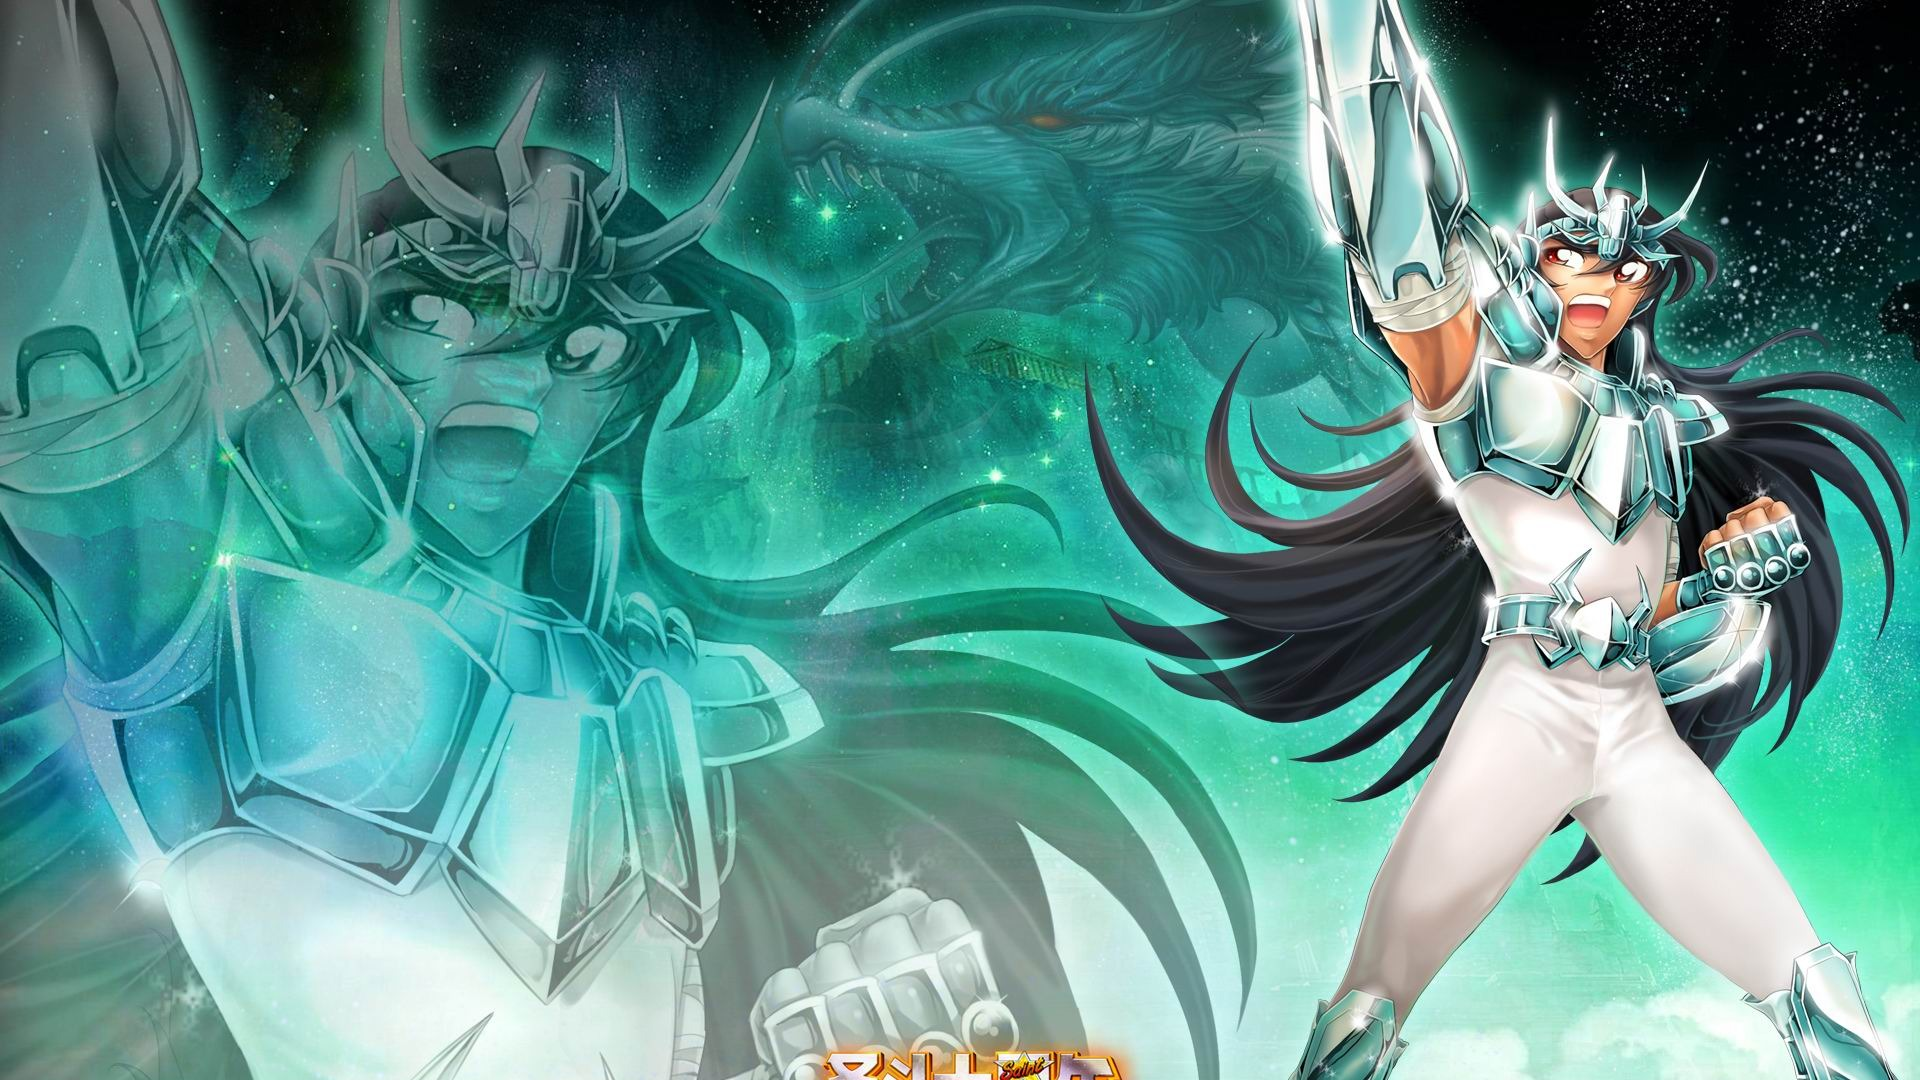 Saint Seiya Wallpapers HD